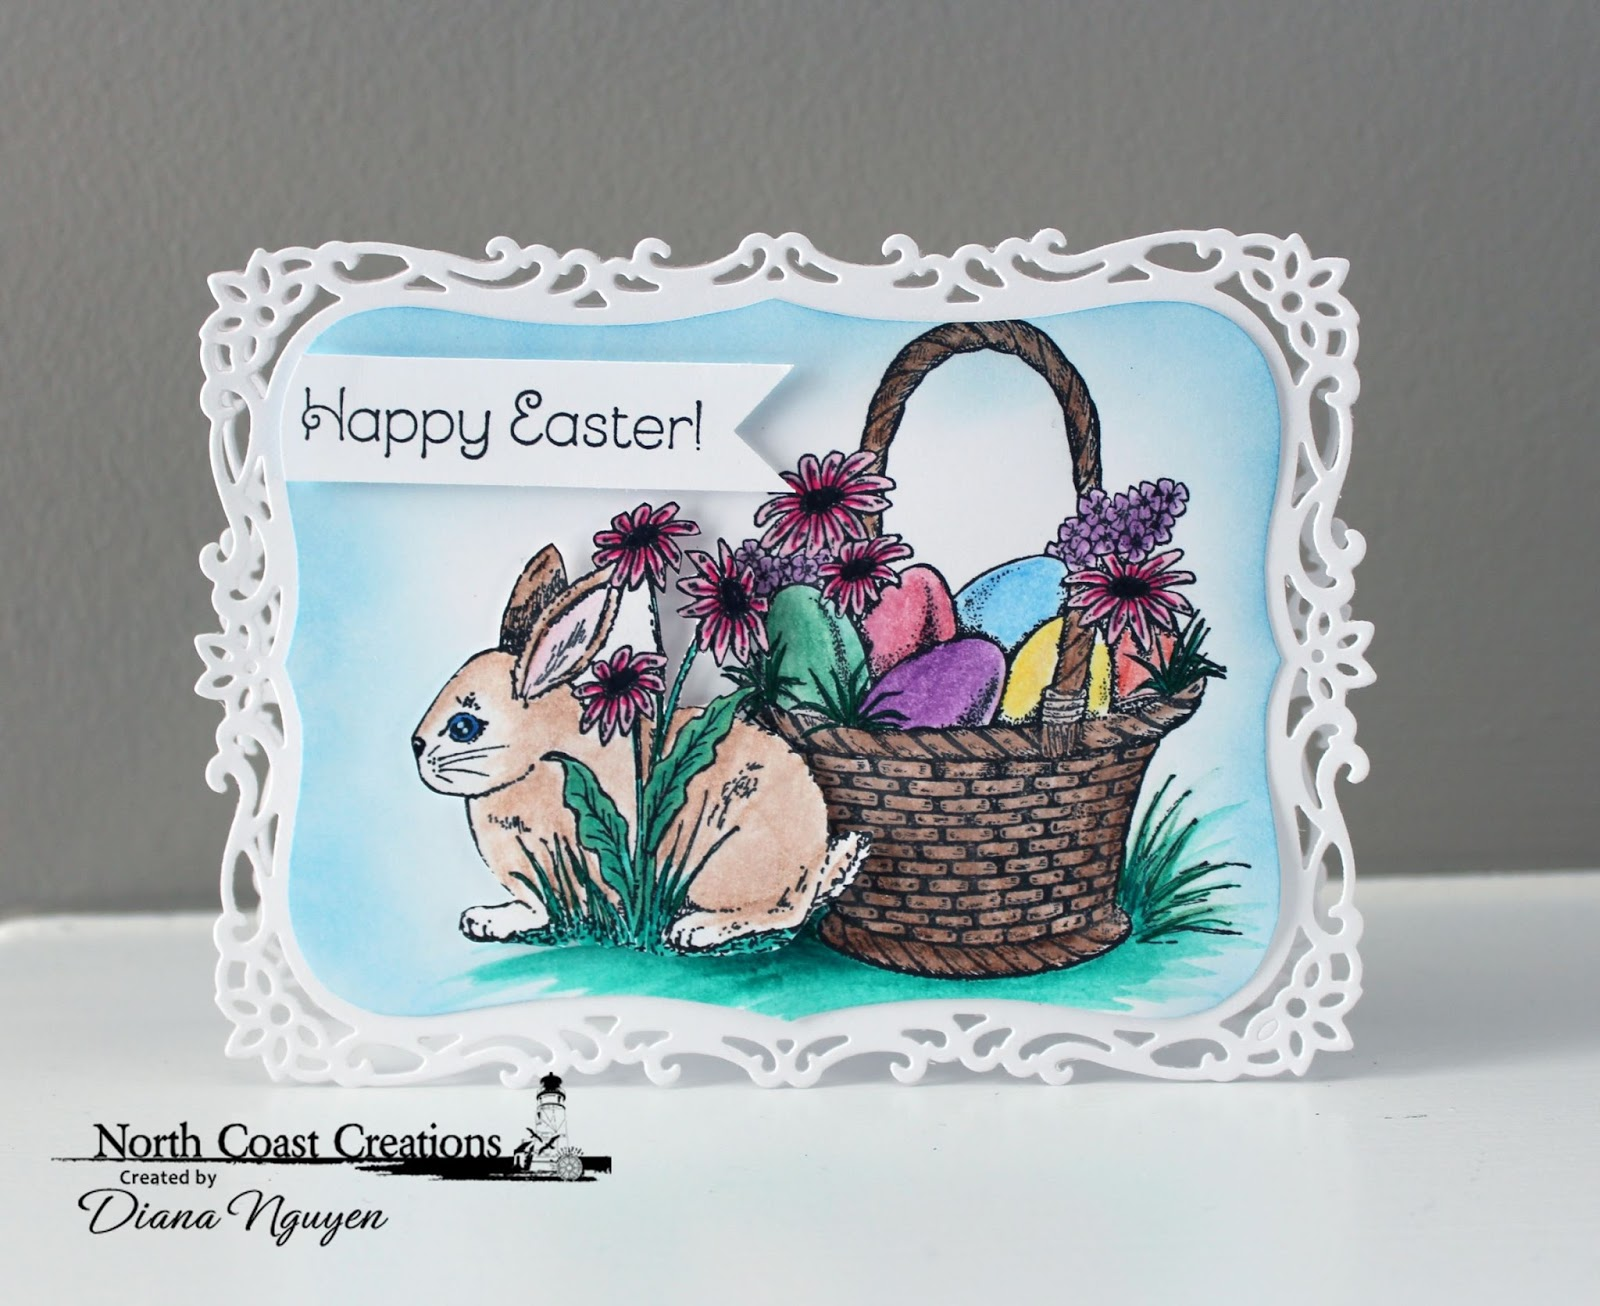 Stamps - North Coast Creations Hoppy Easter, Easter Basket